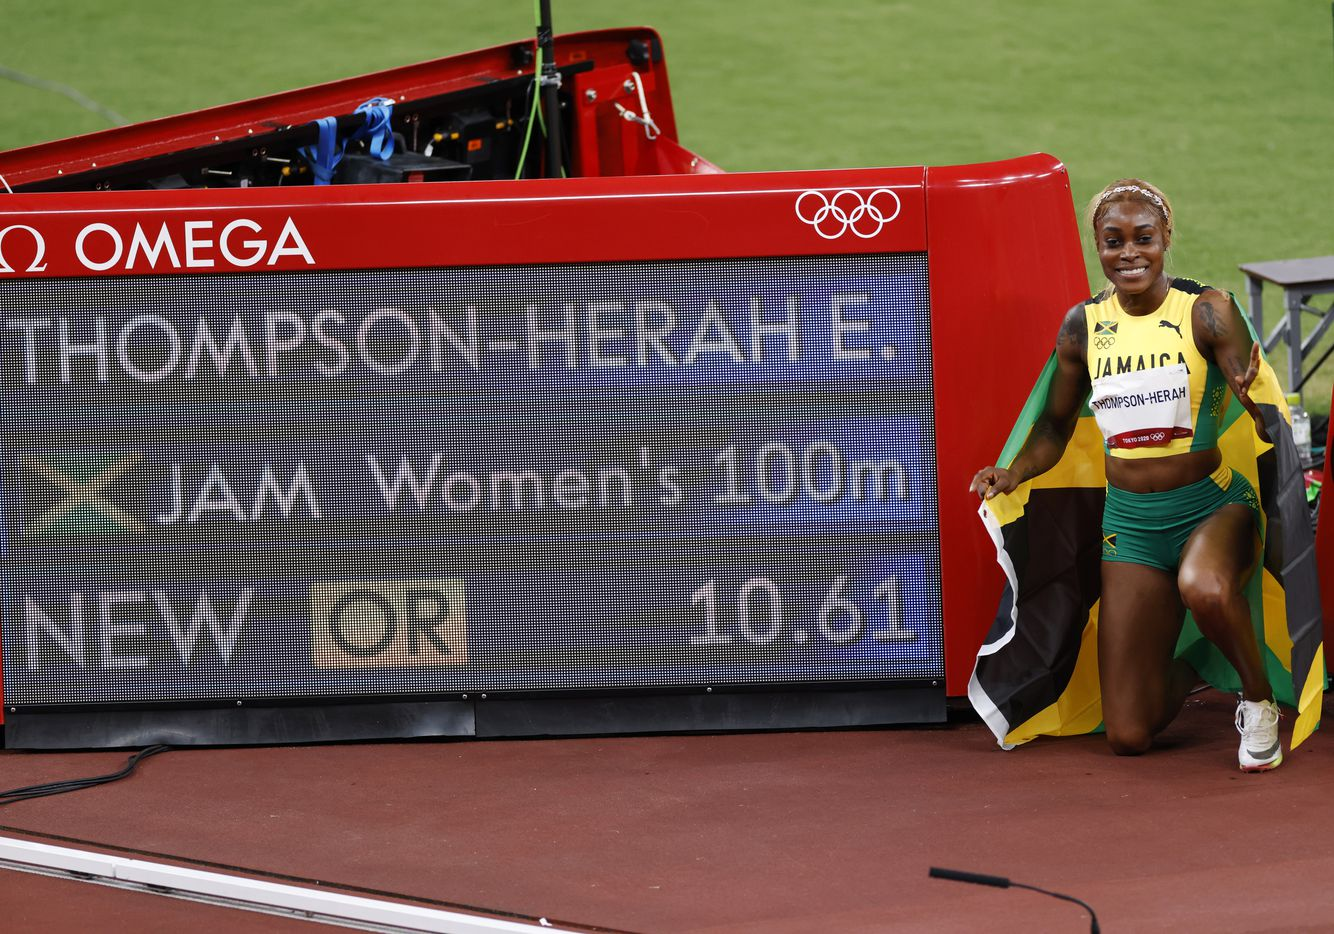 Jamaica's Elaine Thompson-Herah holds up the Jamaican flag after winning the women's 100 meter final race during the postponed 2020 Tokyo Olympics at Olympic Stadium, on Saturday, July 31, 2021, in Tokyo, Japan. Thompson Herah broke the Olympic record with a time of 10.61 to earn a gold medal. (Vernon Bryant/The Dallas Morning News)